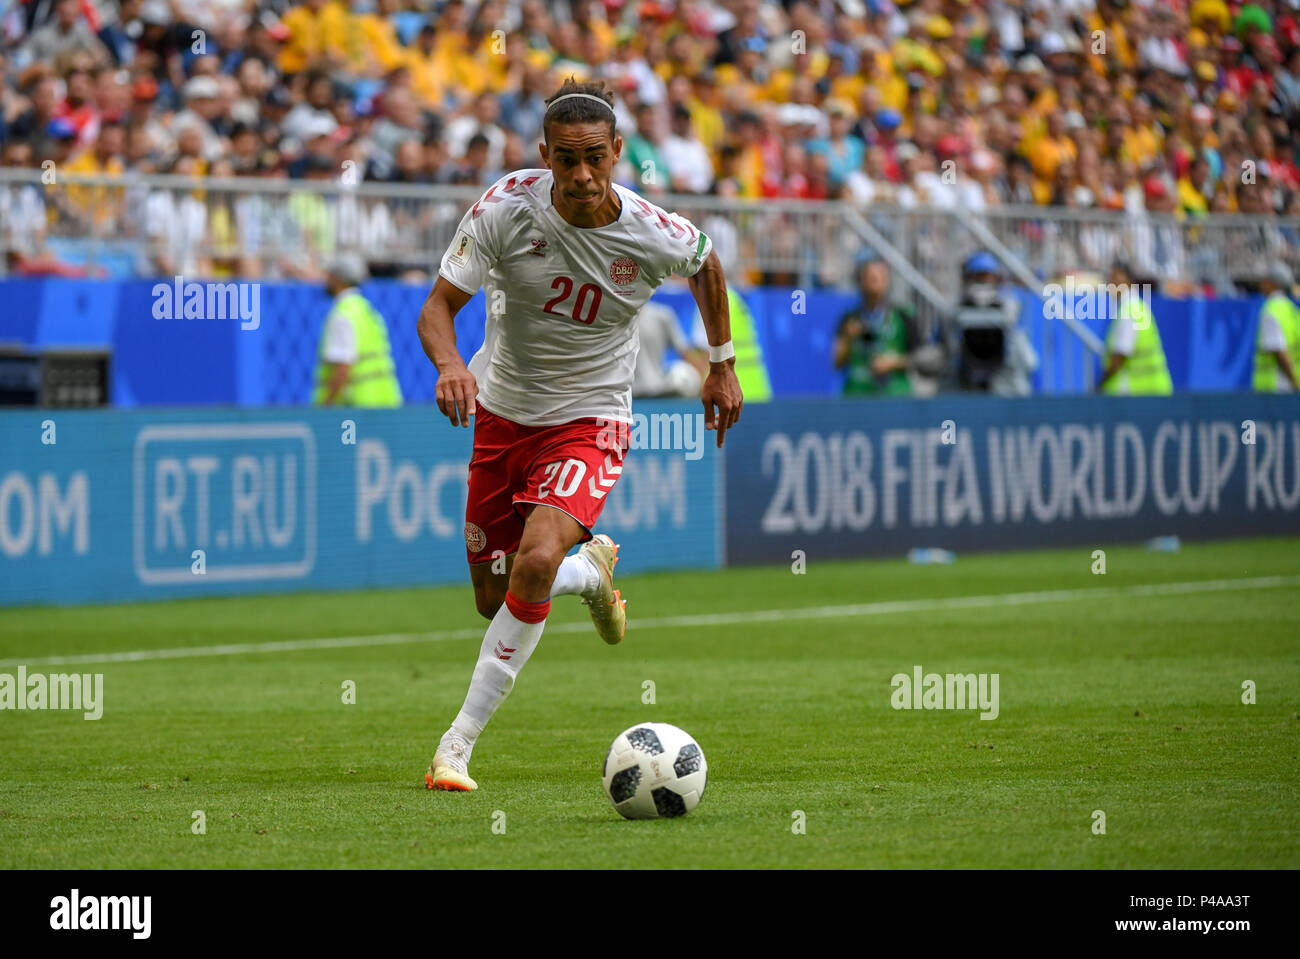 Samara Arena, Samara, Russia. 21st June, 2018. FIFA World Cup Football, Group C Denmark versus Australia; Yussuf Yurary Poulsen of Denmark Credit: Action Plus Sports/Alamy Live News Stock Photo